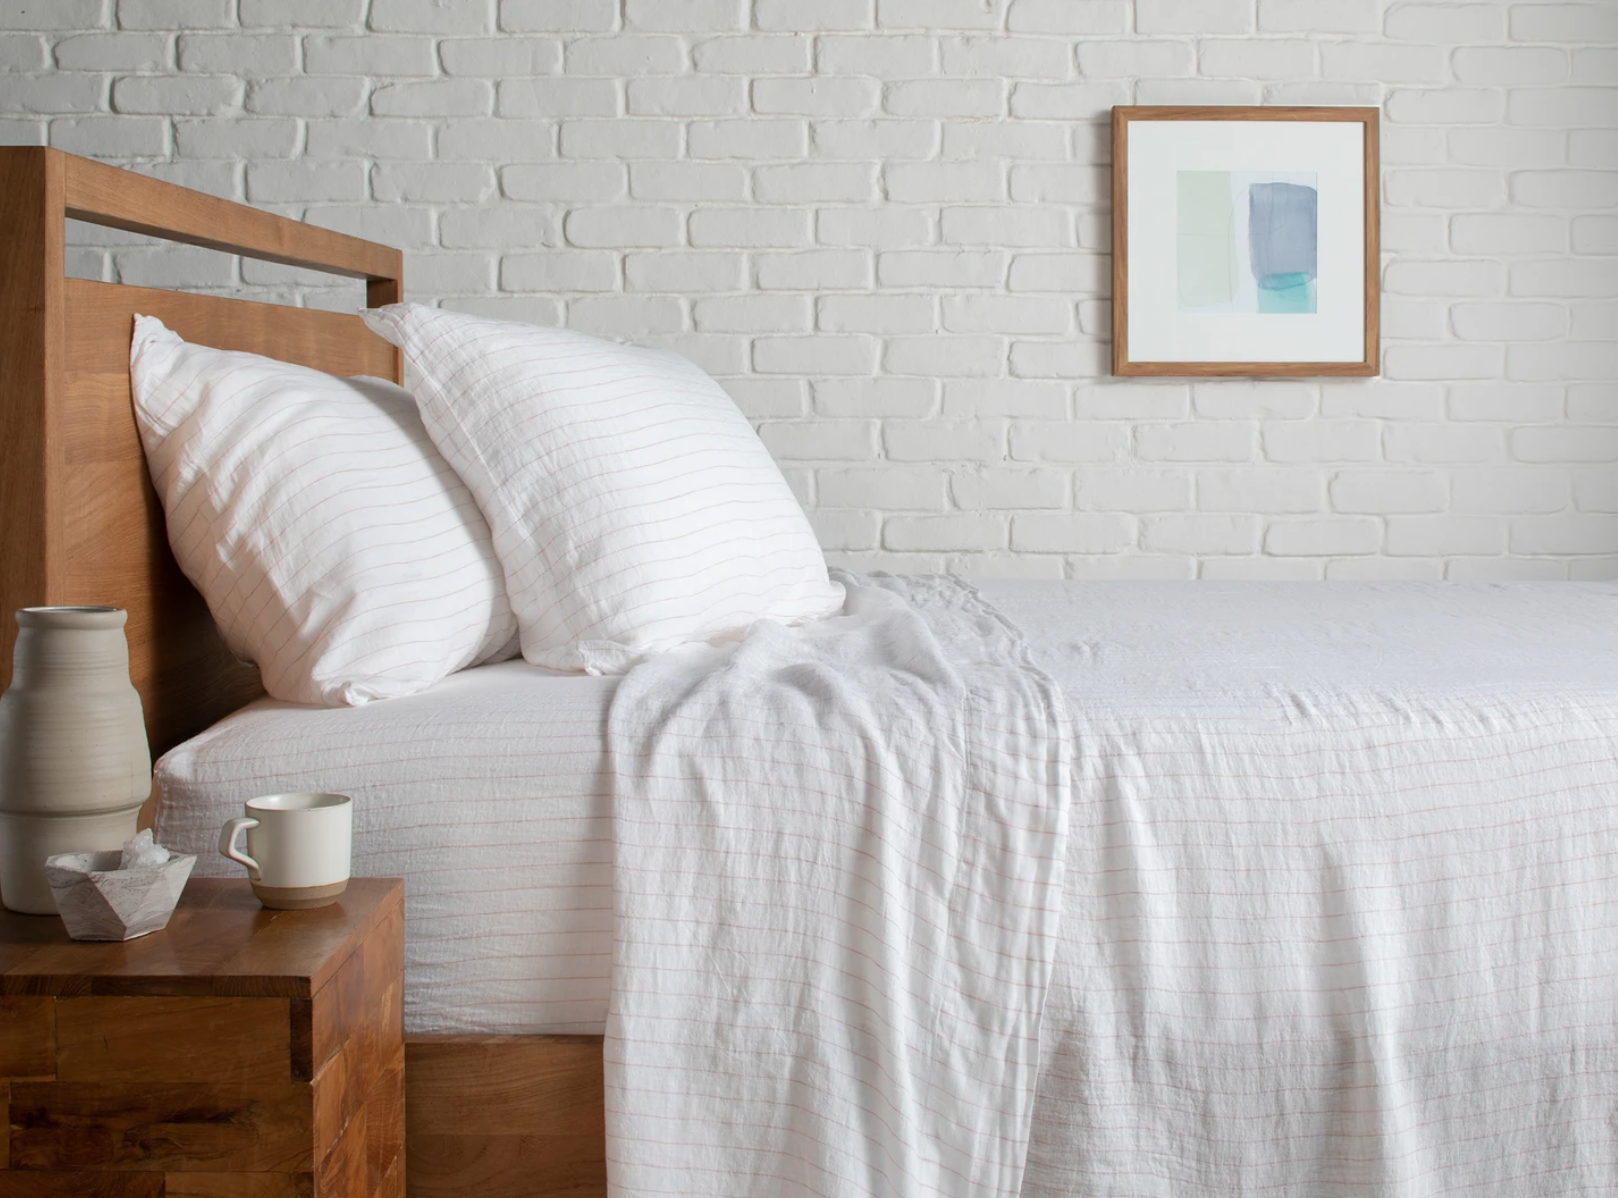 Parachute's Having A Secret Sale On Its Ridiculously Popular Bed Sheets And Towels